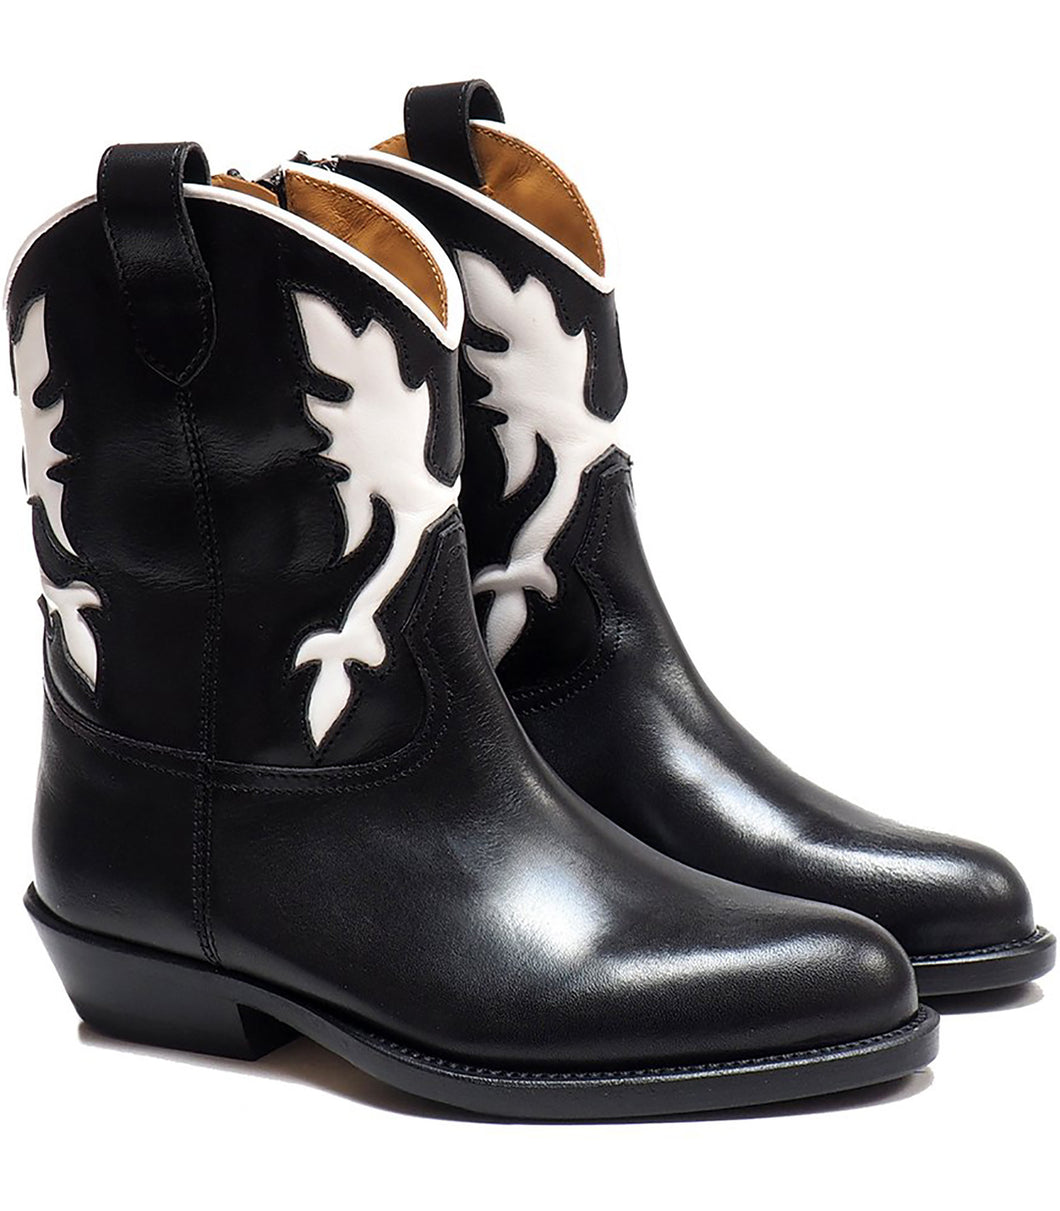 Black Texan Boots